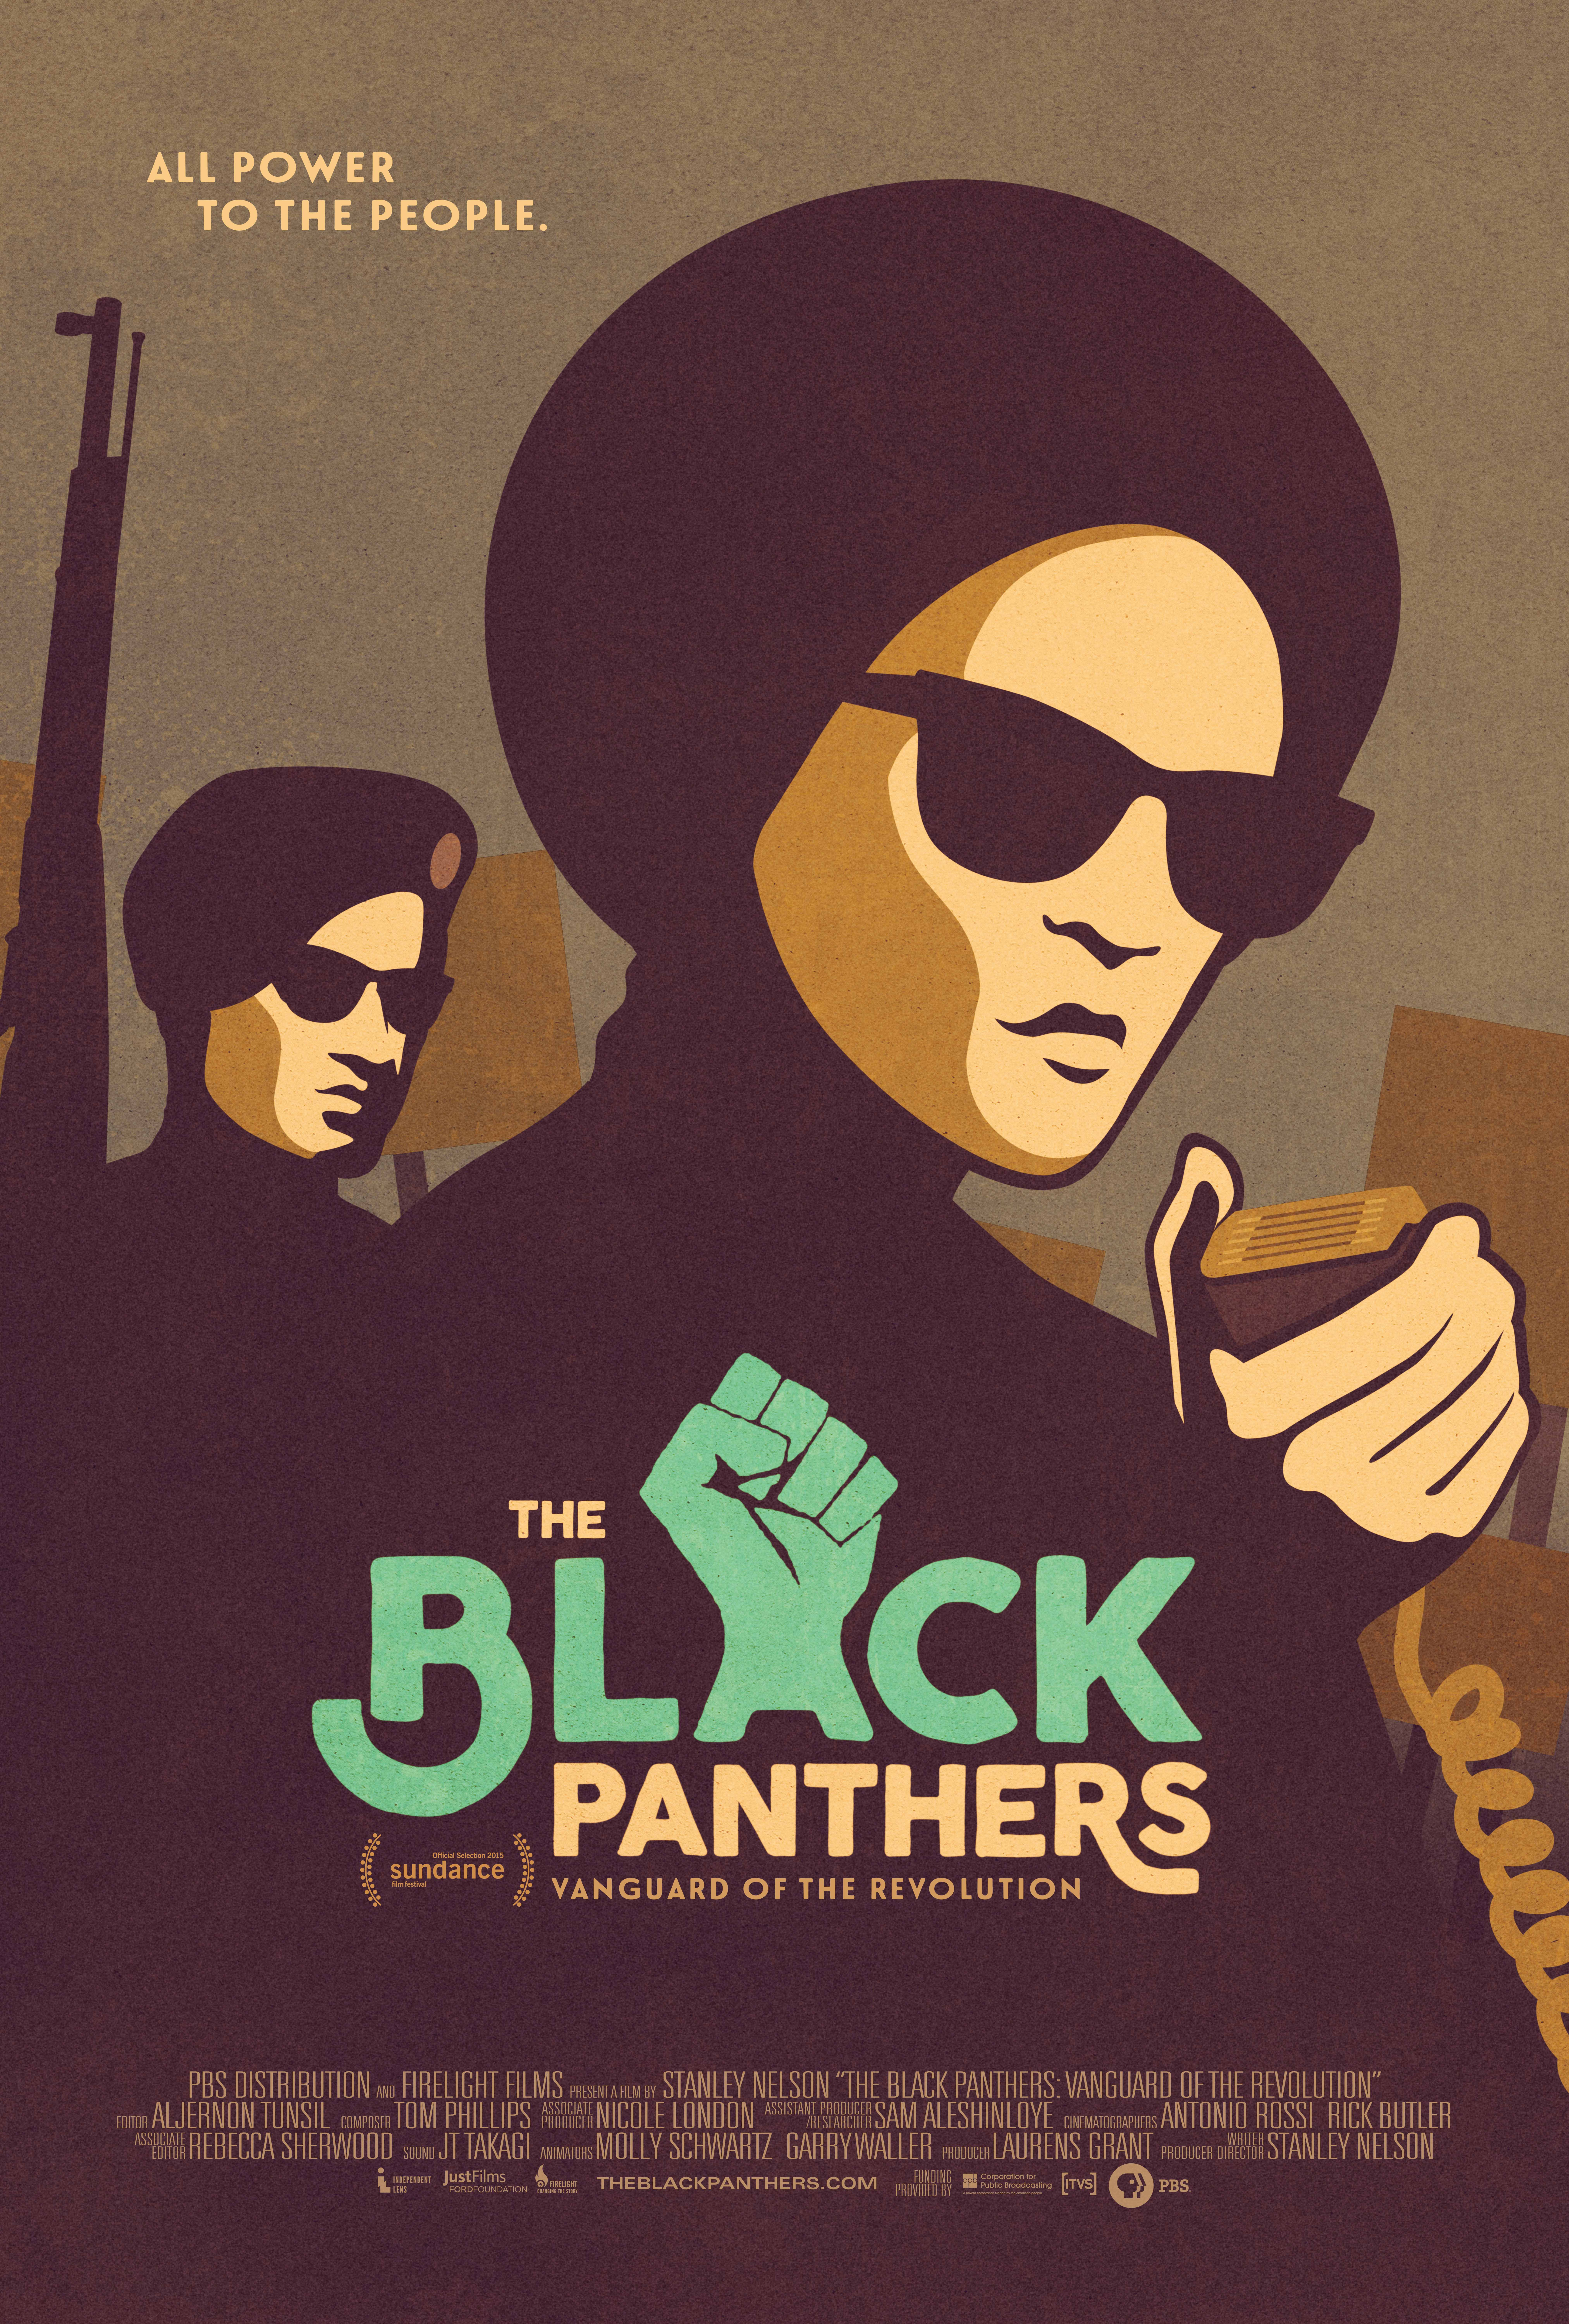 Pbs-blackpanthers_27x40_small